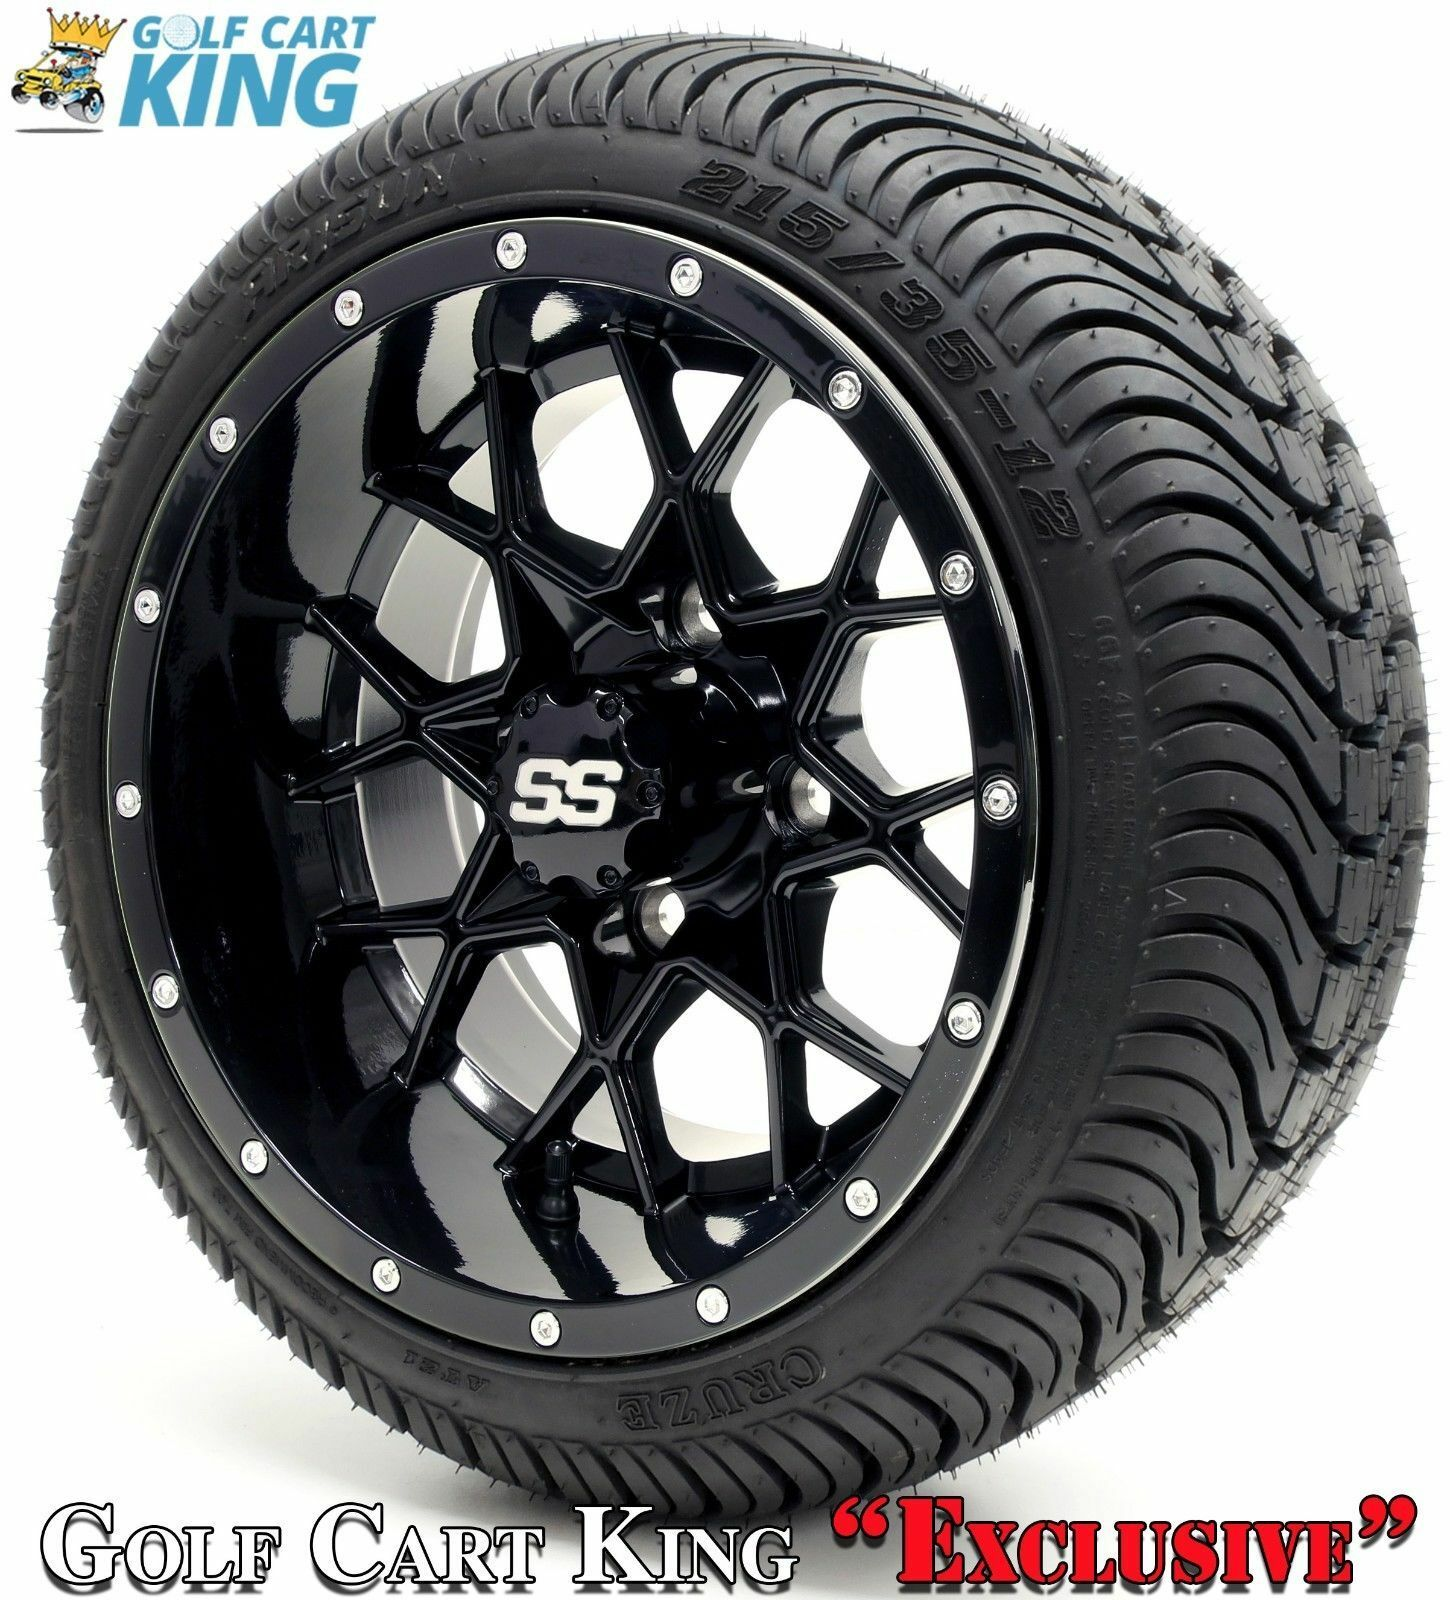 GOLF CART WHEELS and Tires - 12